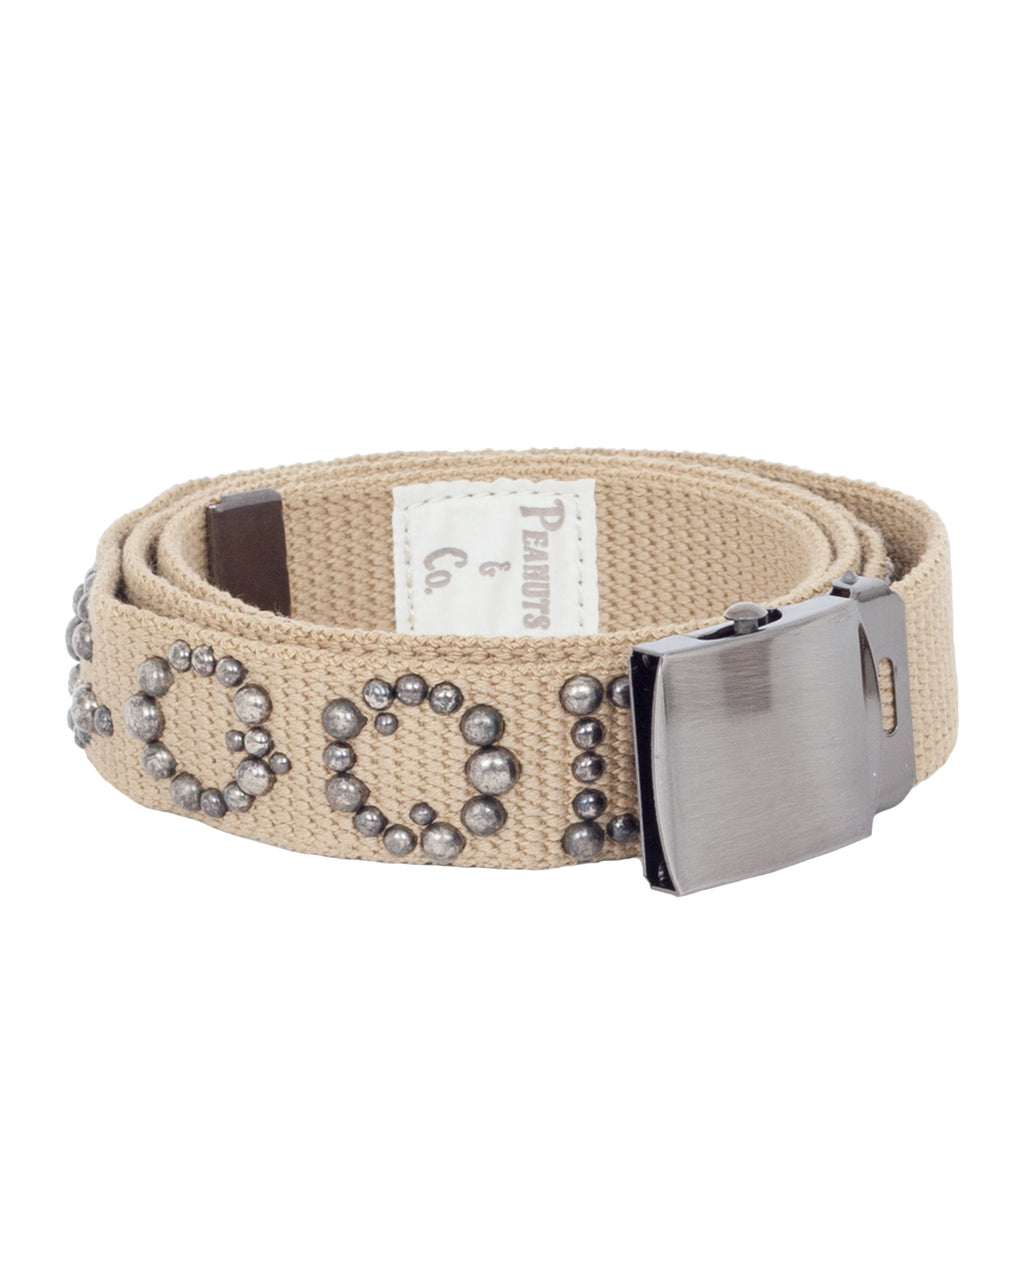 Peanuts & Co Studded Gacha Belt, Beige